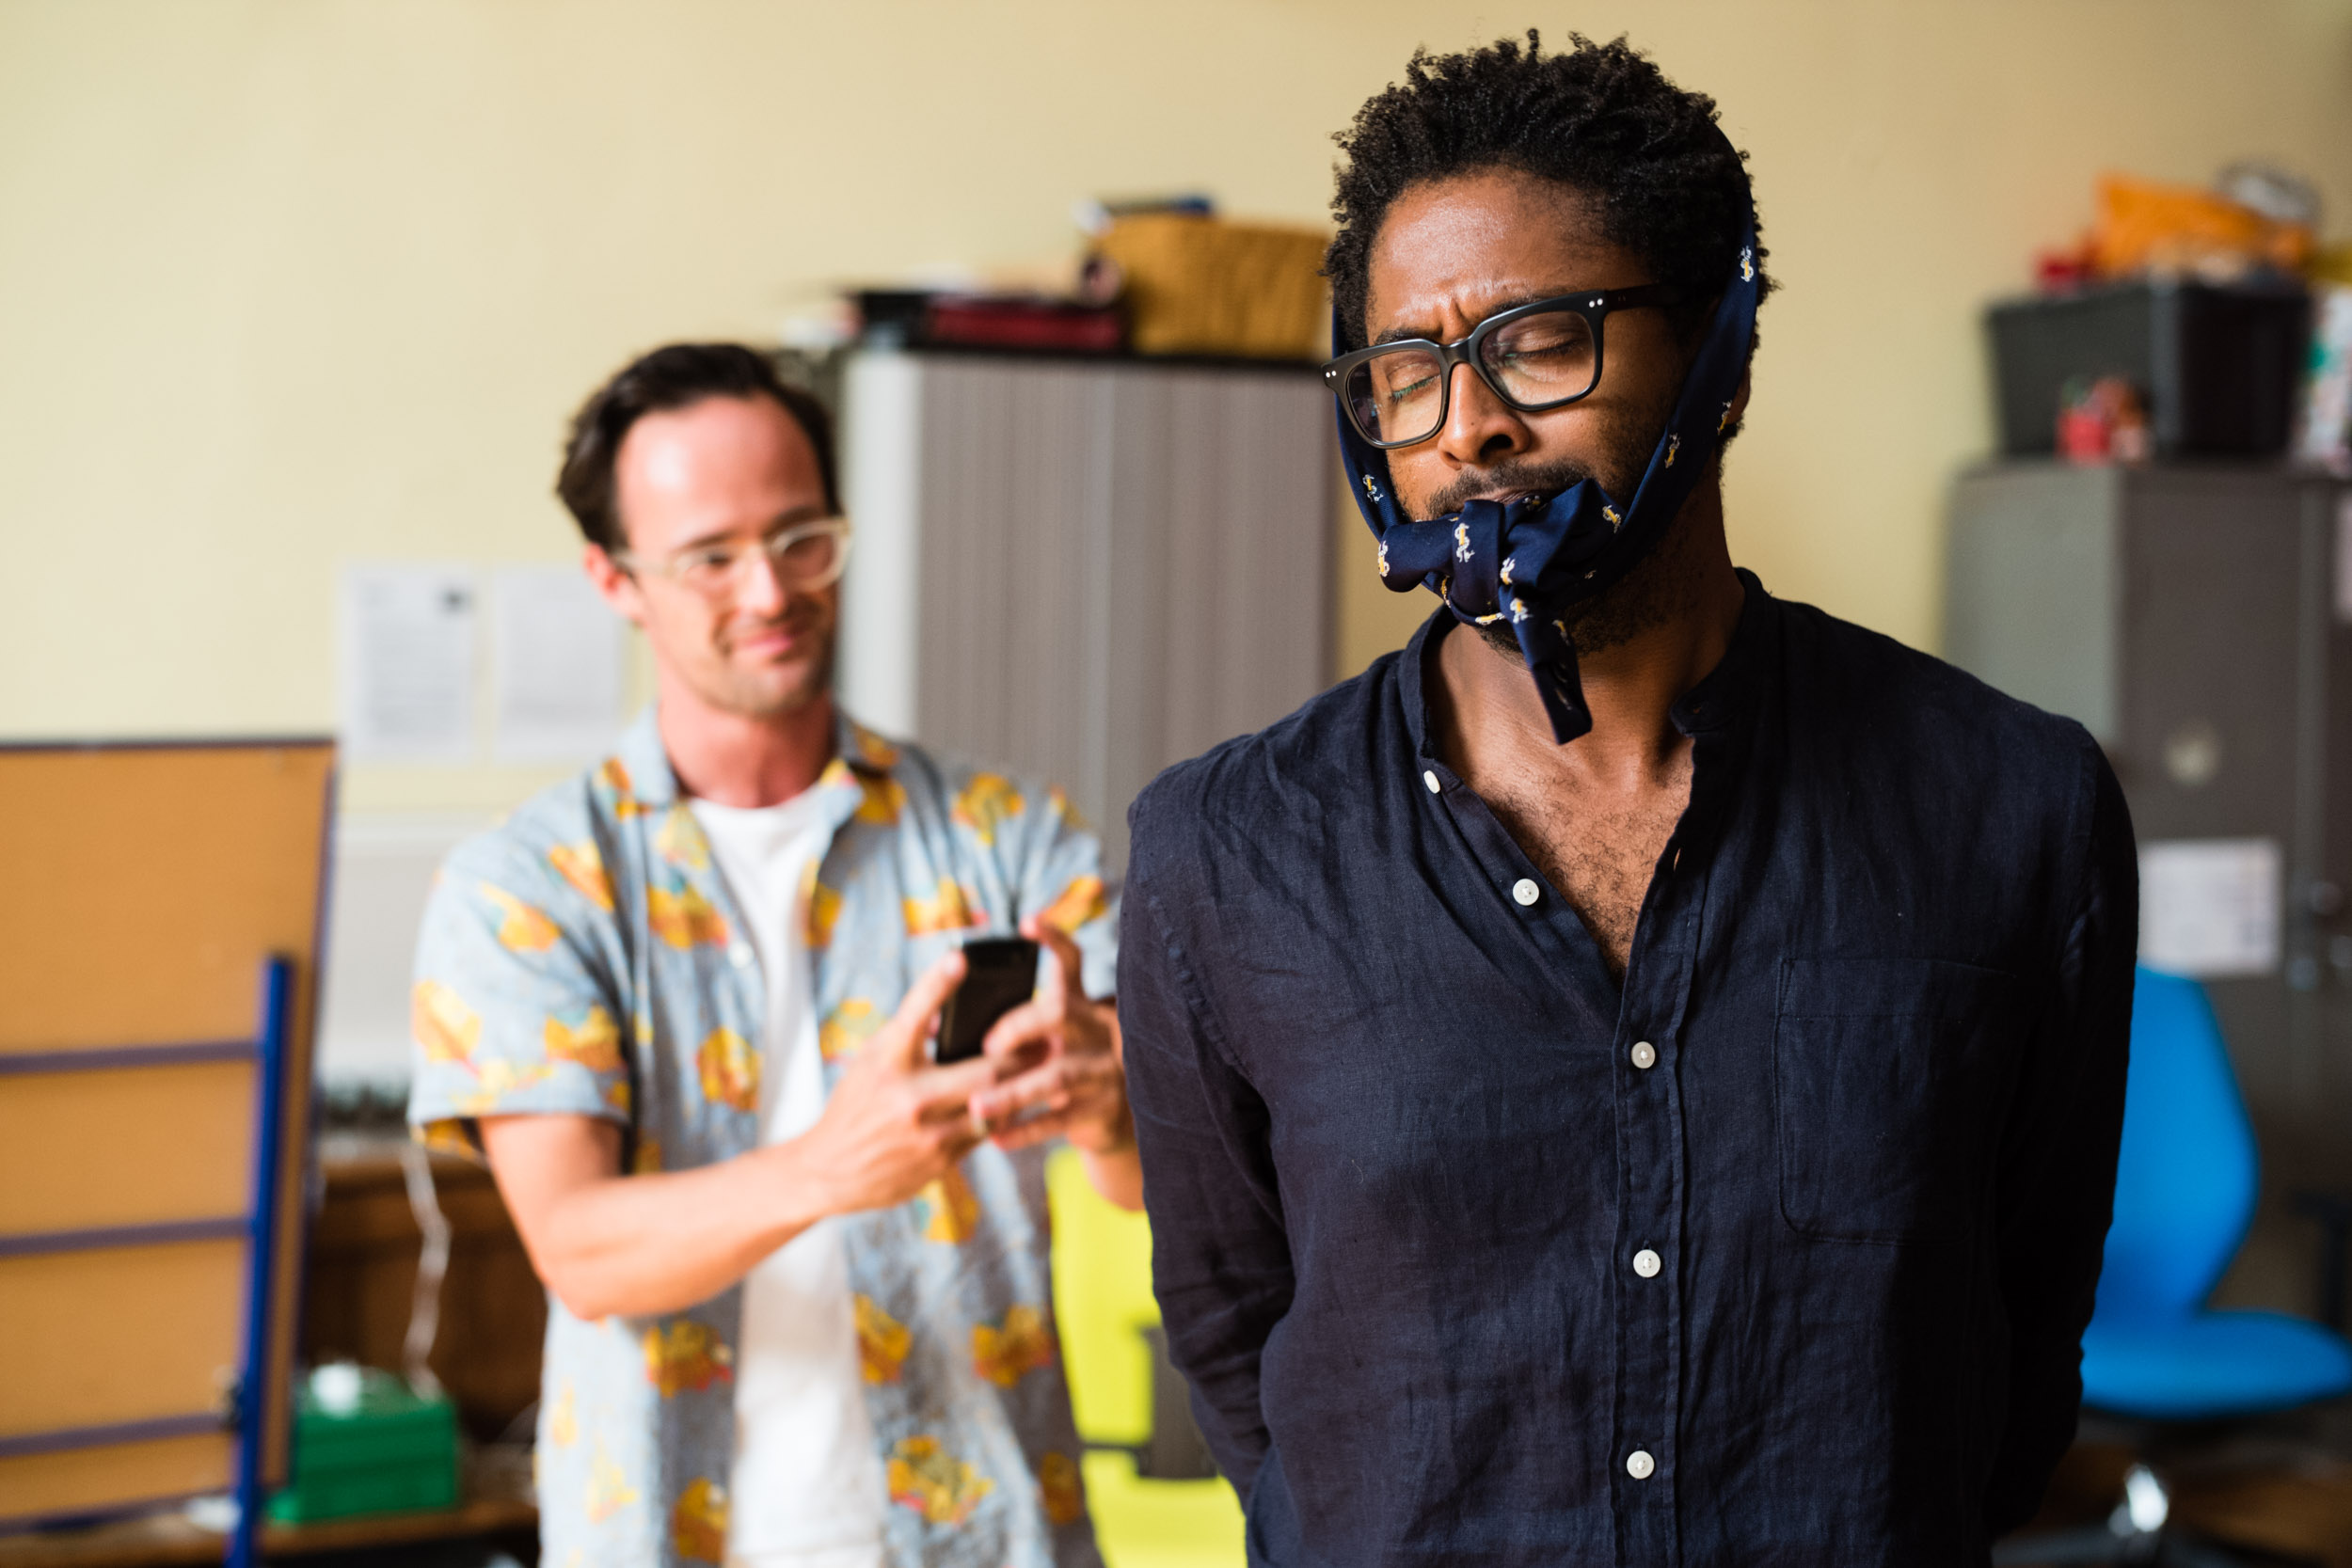 From Left: Lawrence Olsworth-Peter (Tamino), Peter Brathwaite (Papageno)